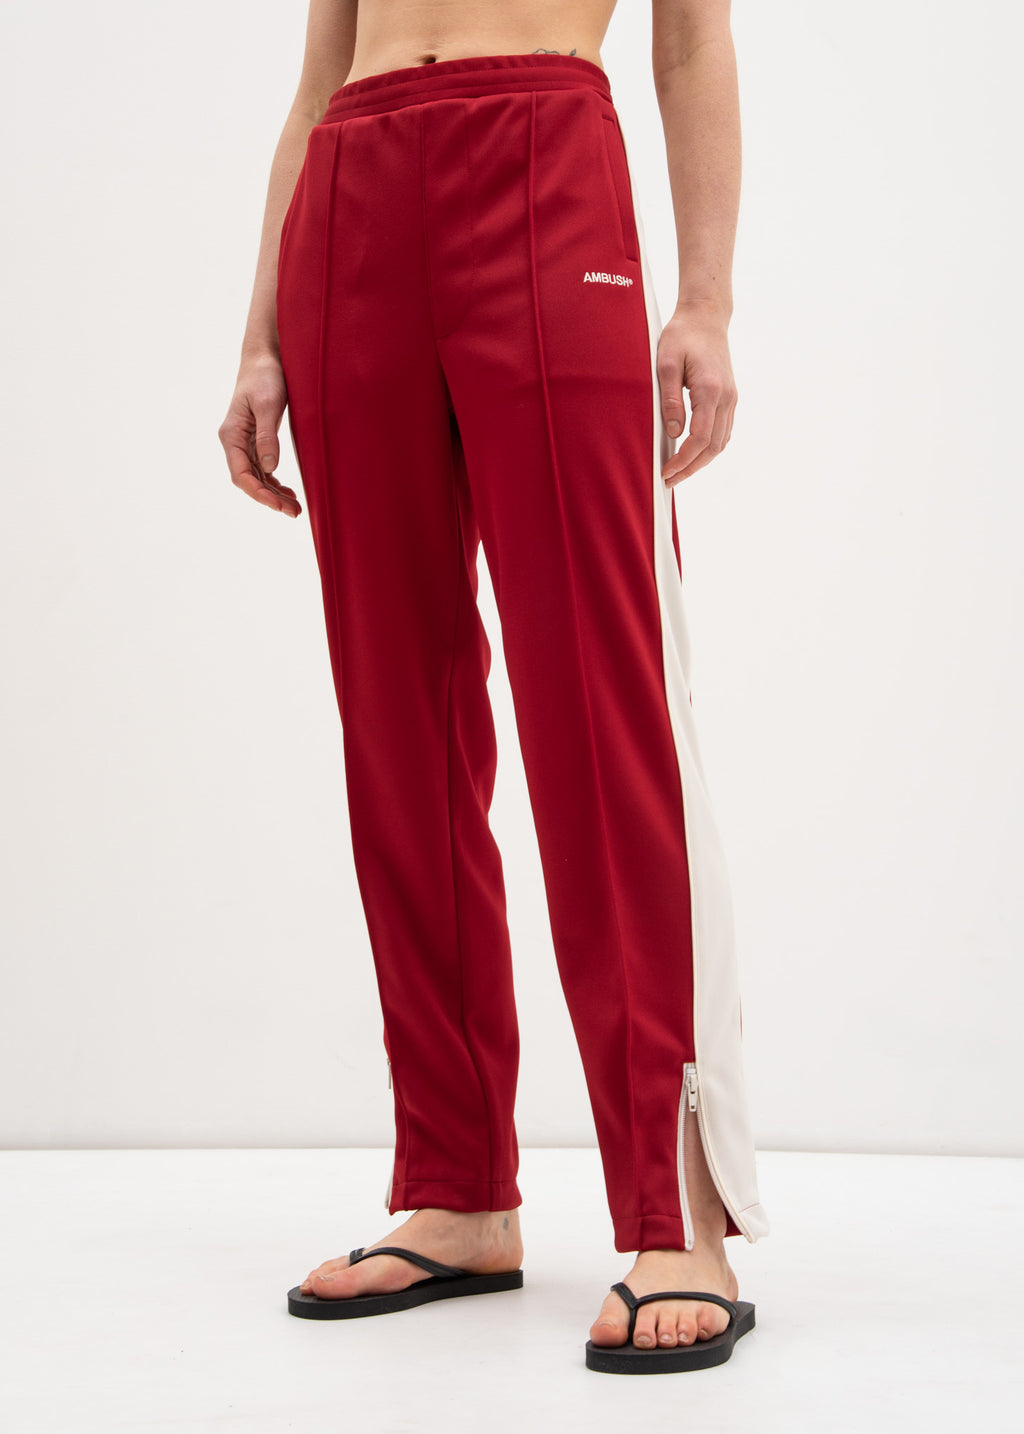 Red Waves Track Pants